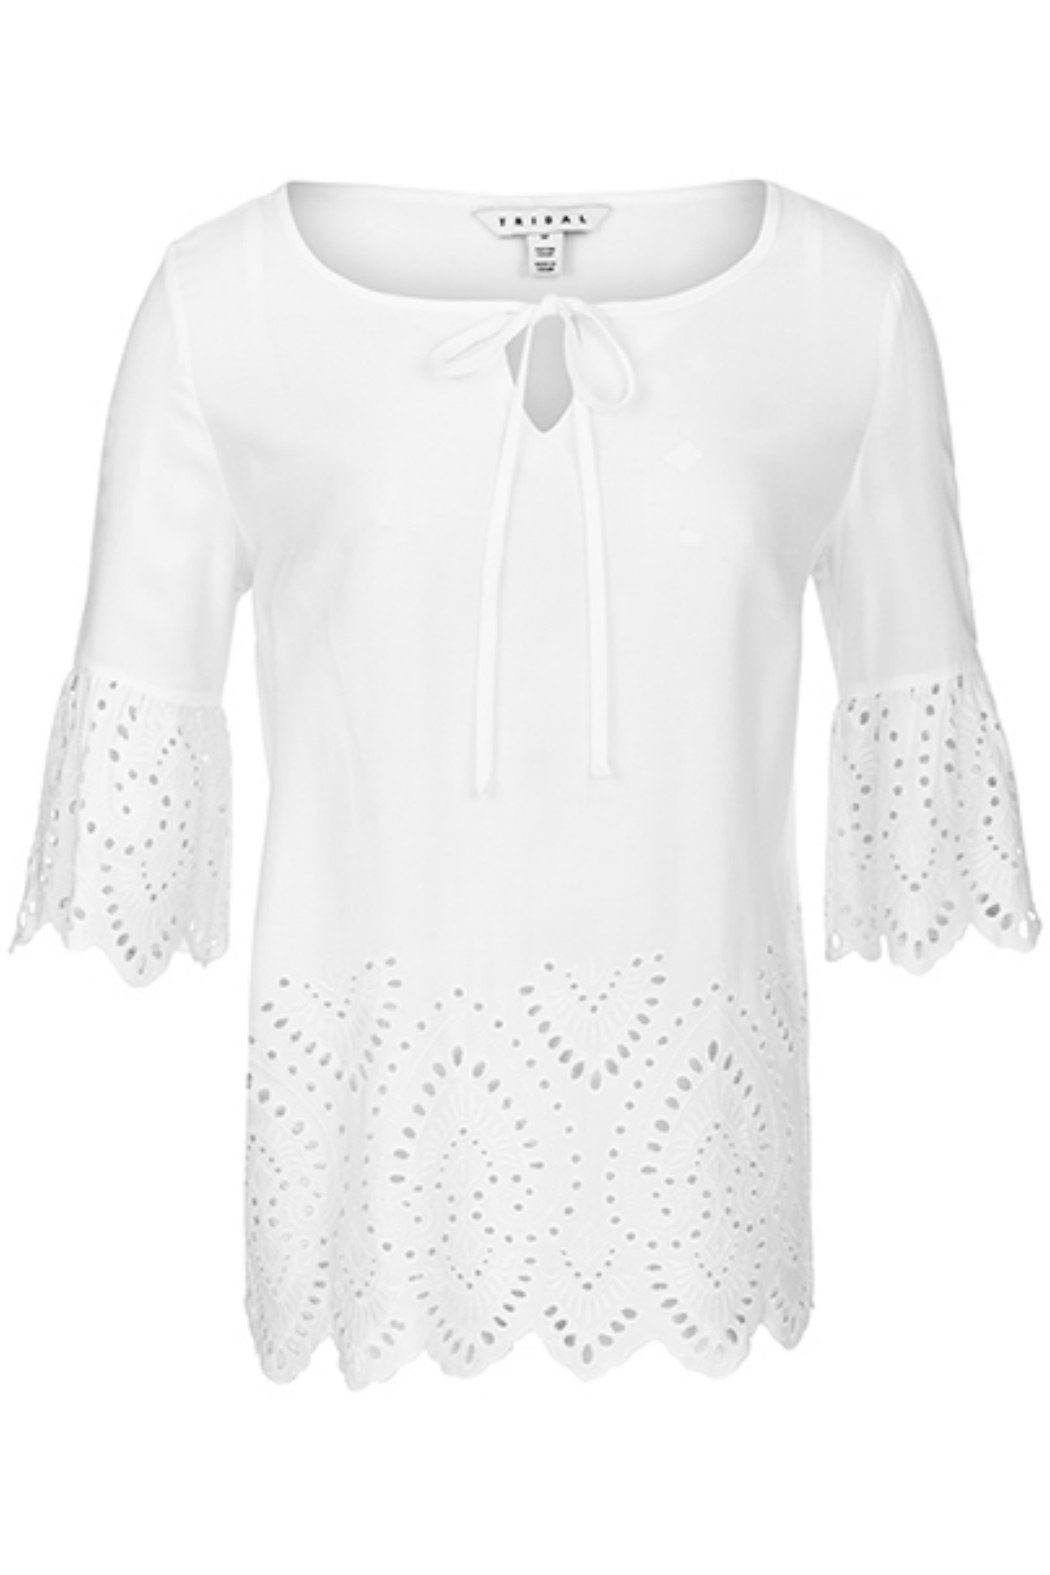 Tribal embroidered blouse with tie - Main Image